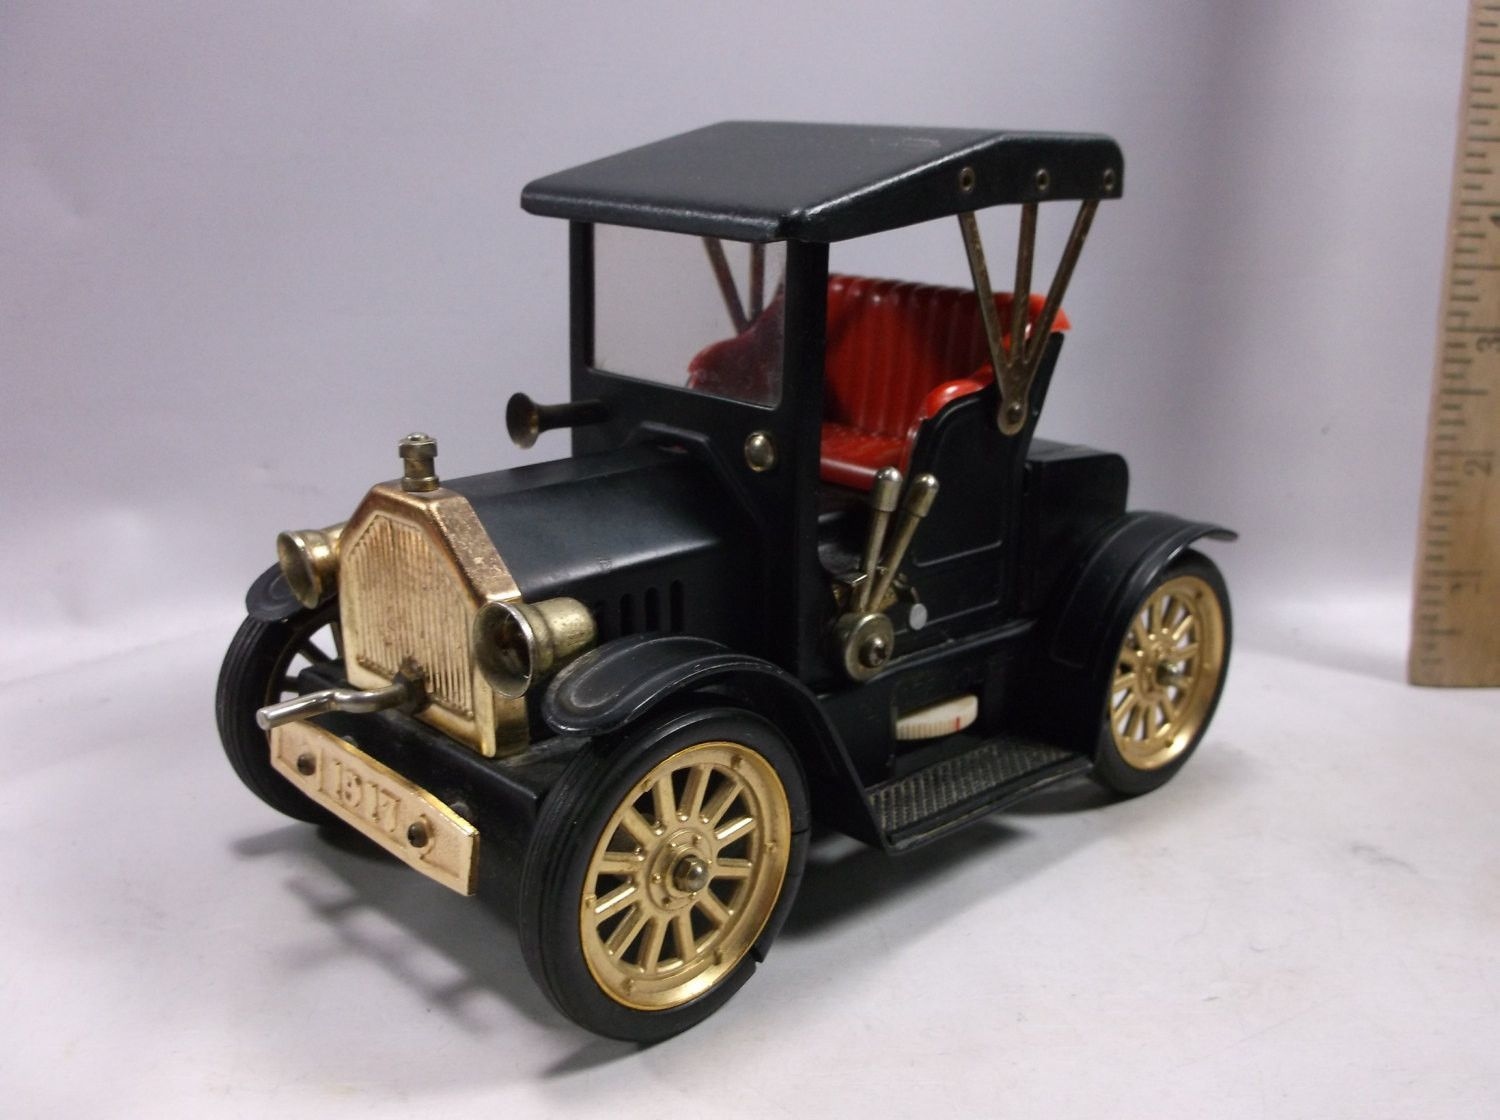 Transistor Radio Old Black Ford Model T 1917 Toy Size Car Working